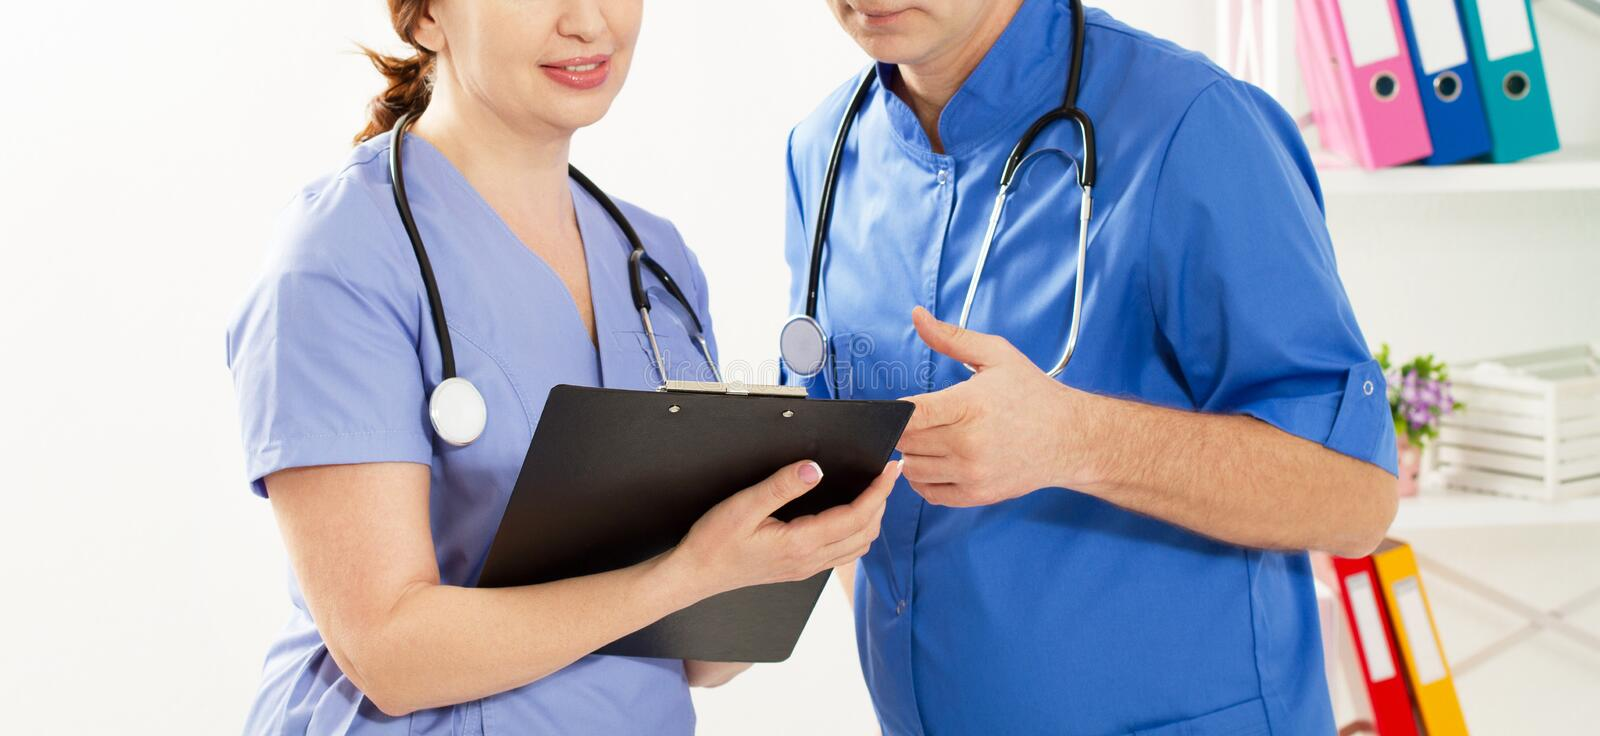 Doctor and nurse discussing something in the clinic. Two doctors in medical office close up image royalty free stock photography